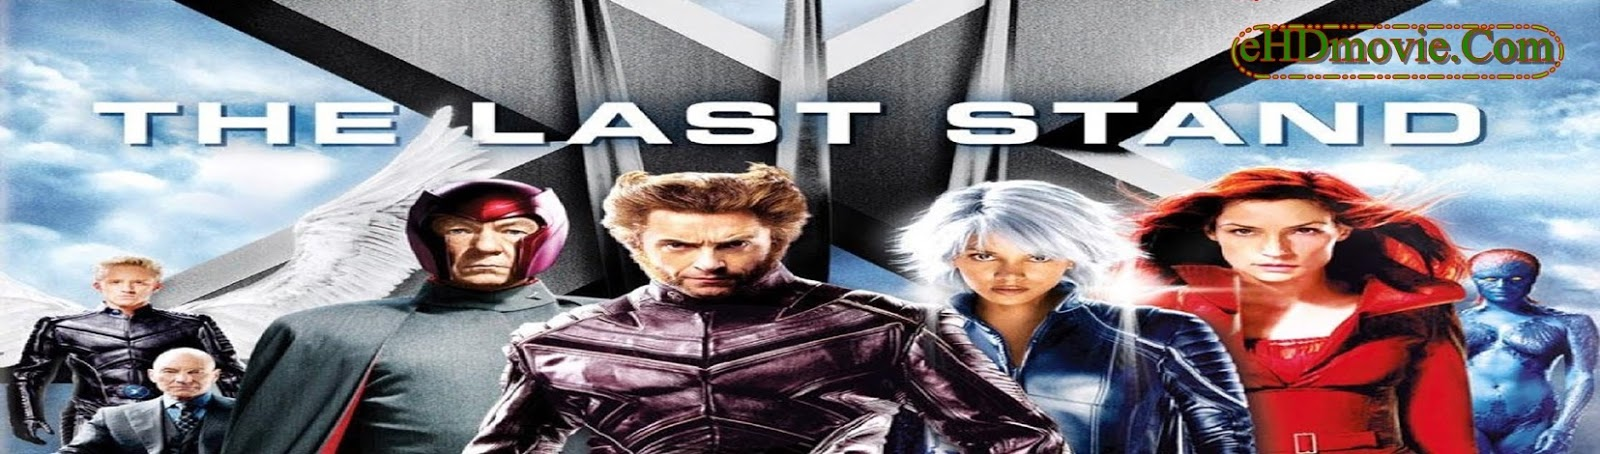 X-Men: The Last Stand 2006 Full Movie Dual Audio [Hindi – English] 1080p - 720p - 480p ORG BRRip 300MB - 700MB - 2.1GB ESubs Free Download